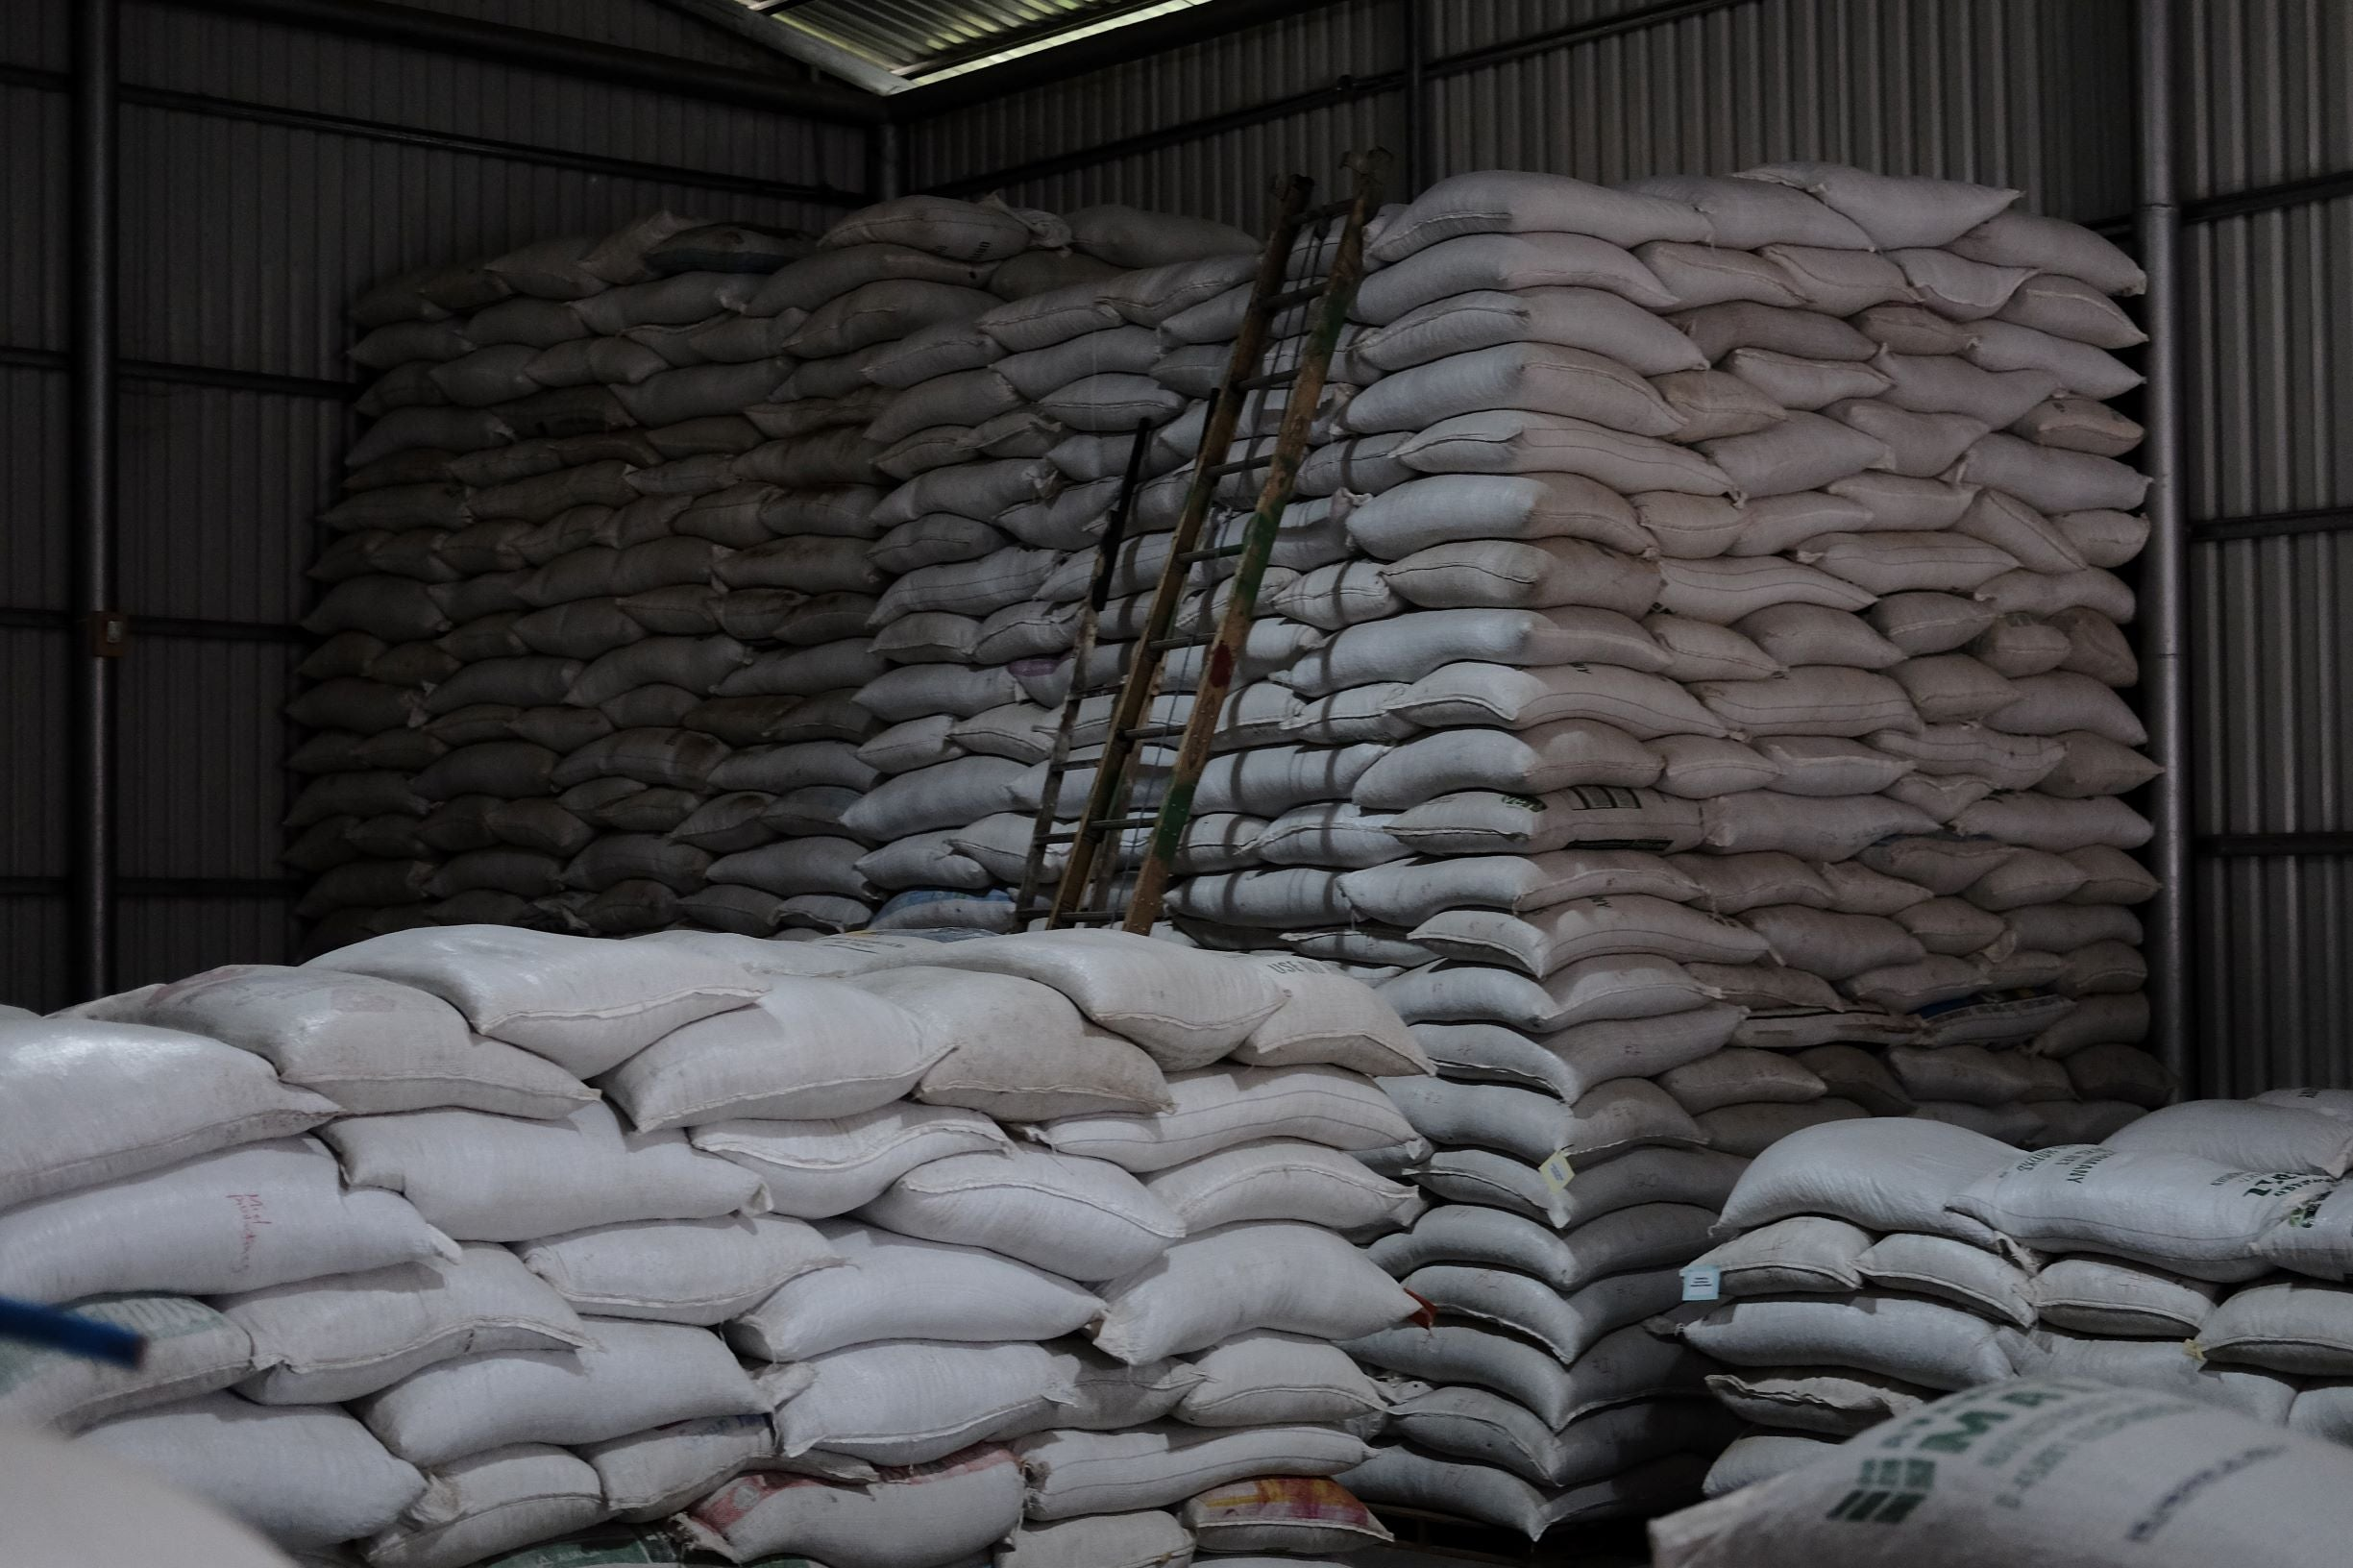 Coffee sacks in the warehouse